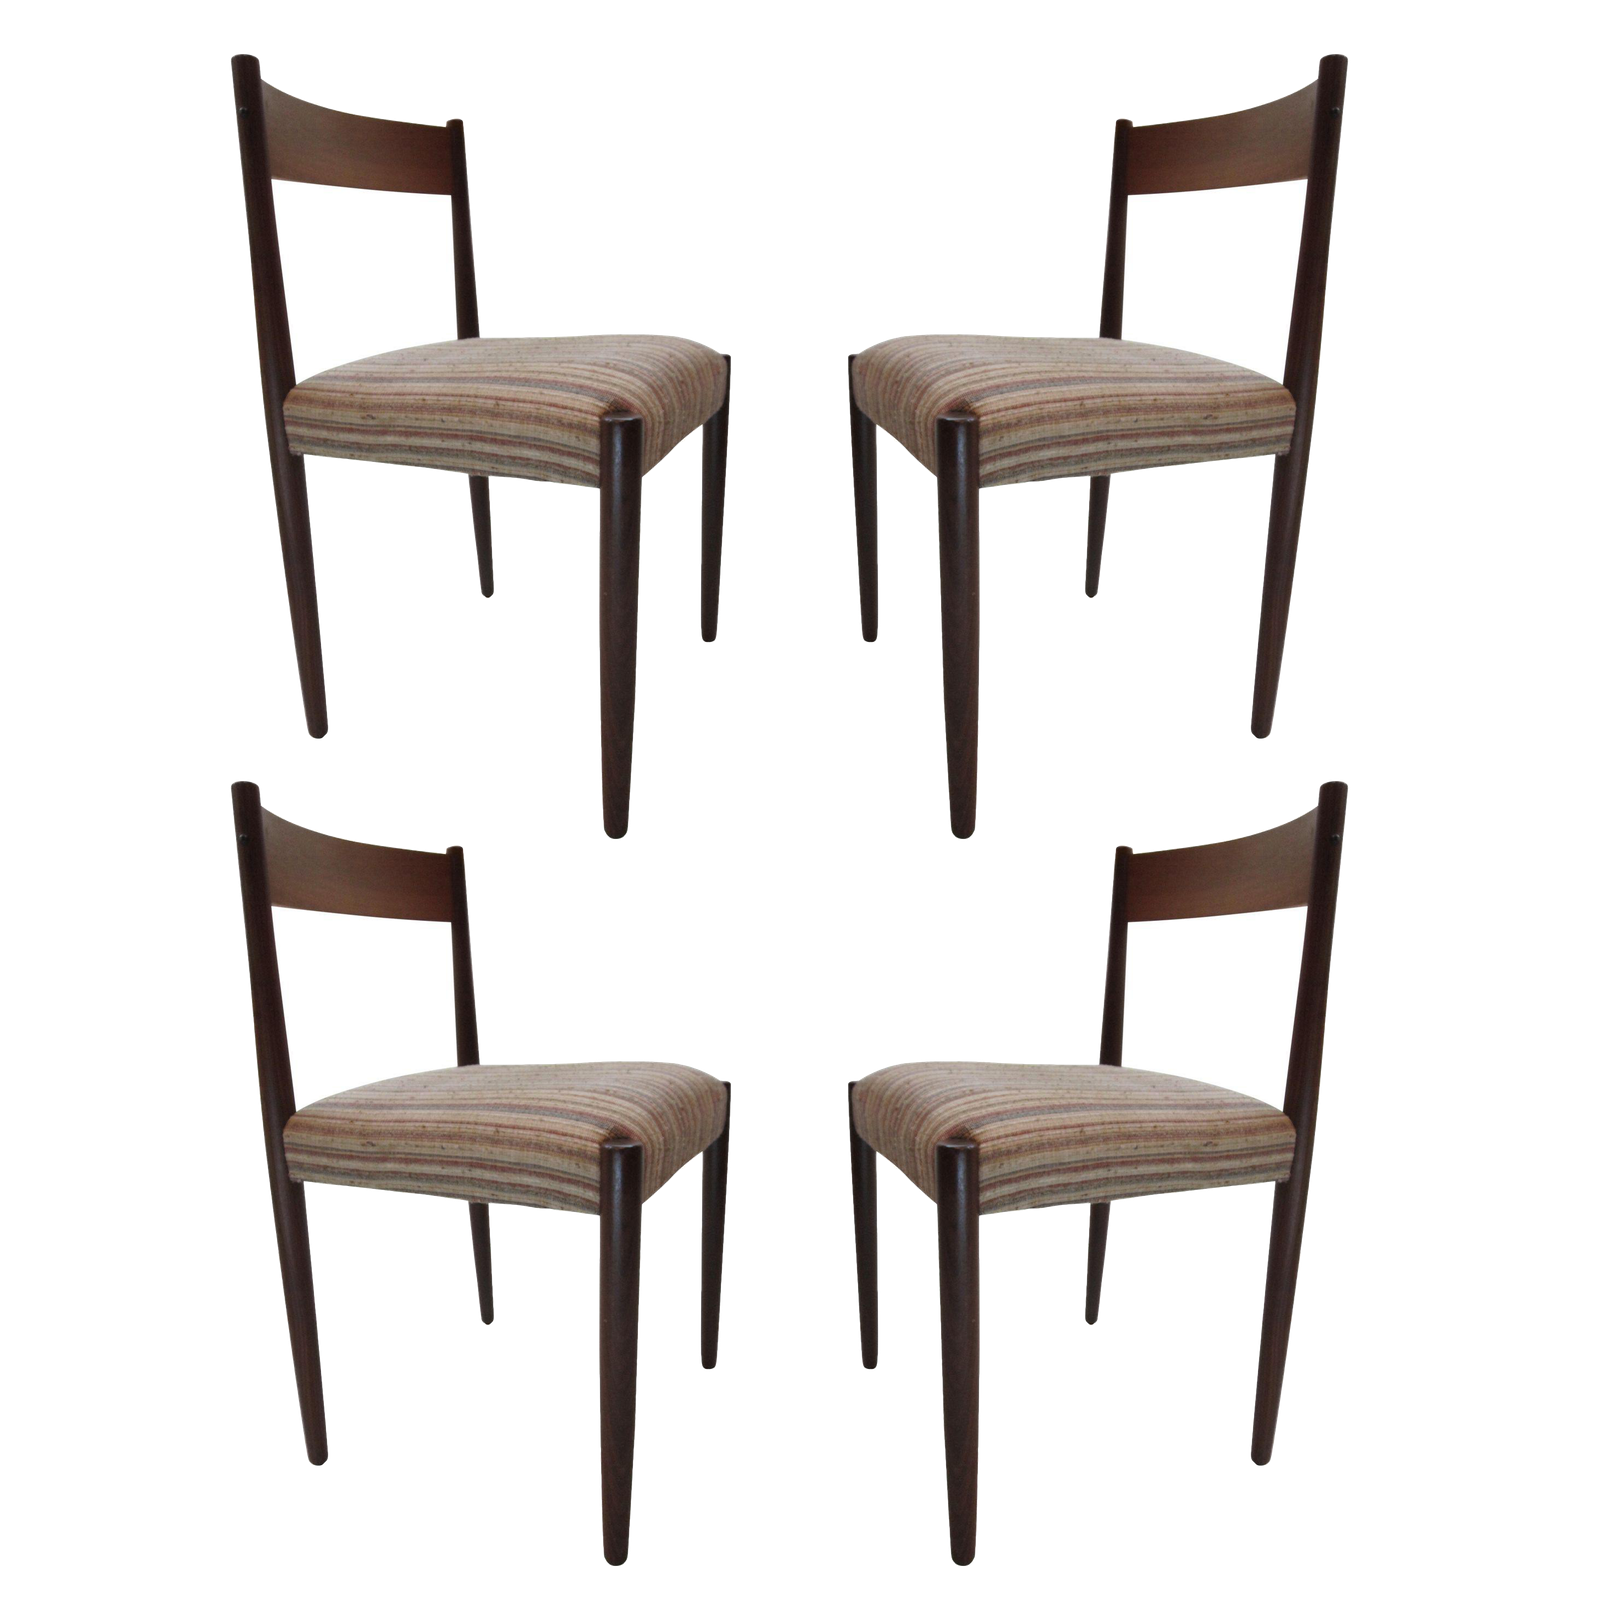 Poul volther danish modern teak dining chairs set of 4 for Modern dining chairs ireland